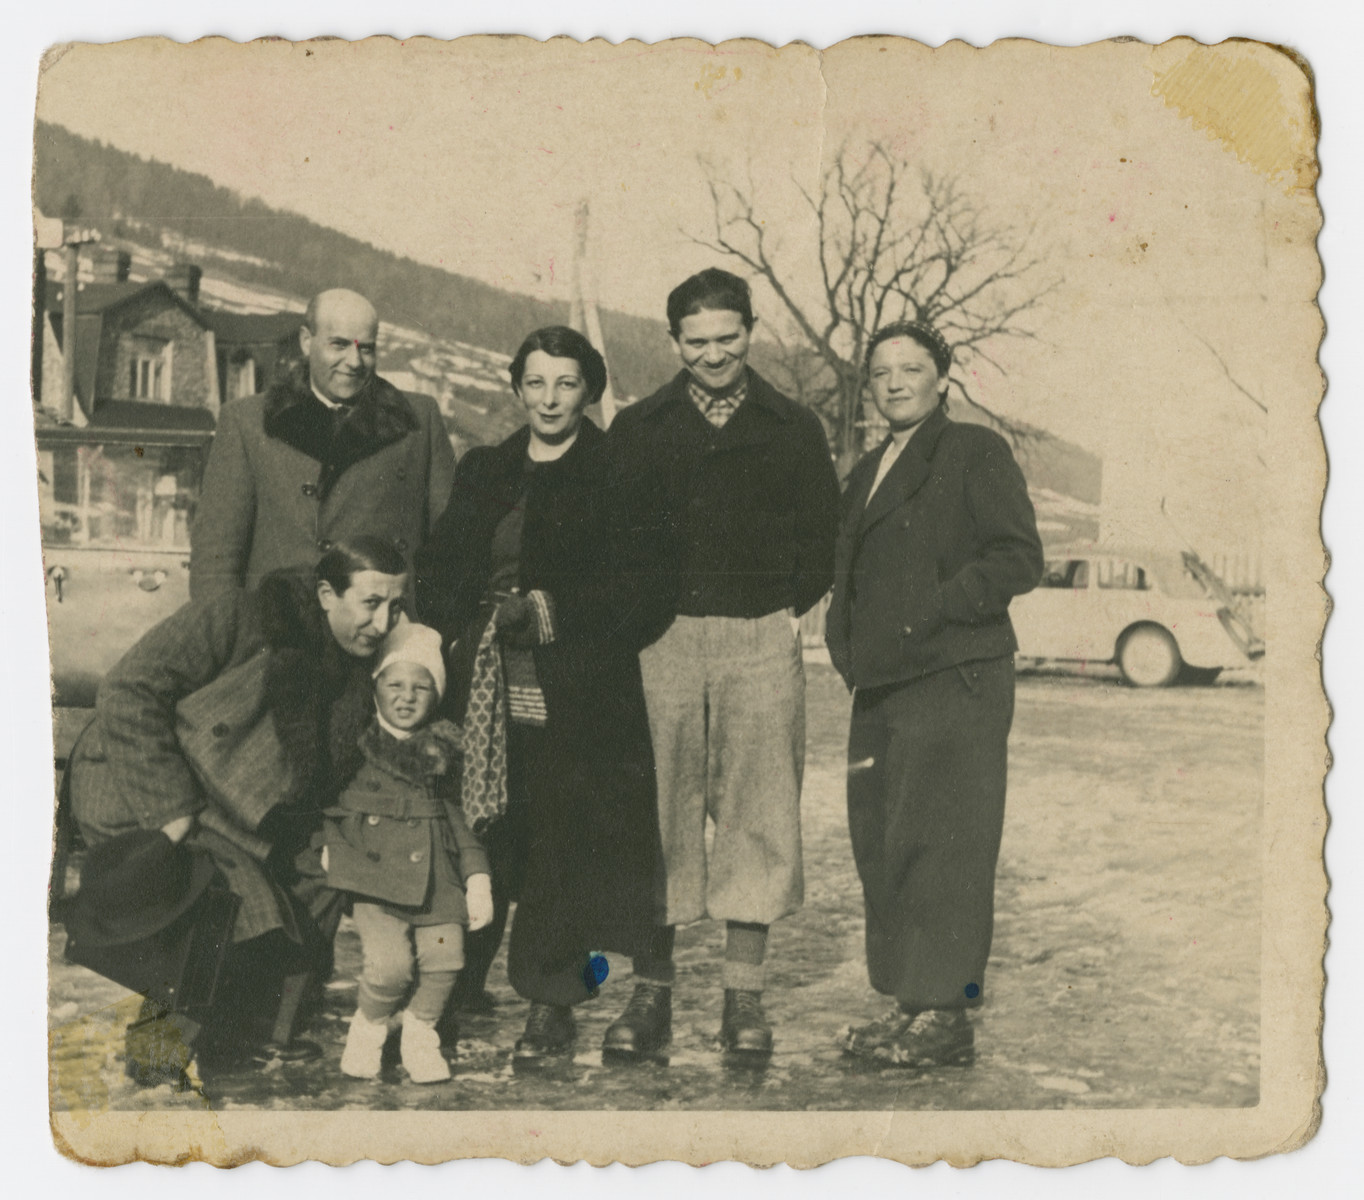 A group of friends pose while on an excursion in prewar Poland.  Alexander and Jurek Ogurek are at the front left.  Karola Ogurek is standing in the center.